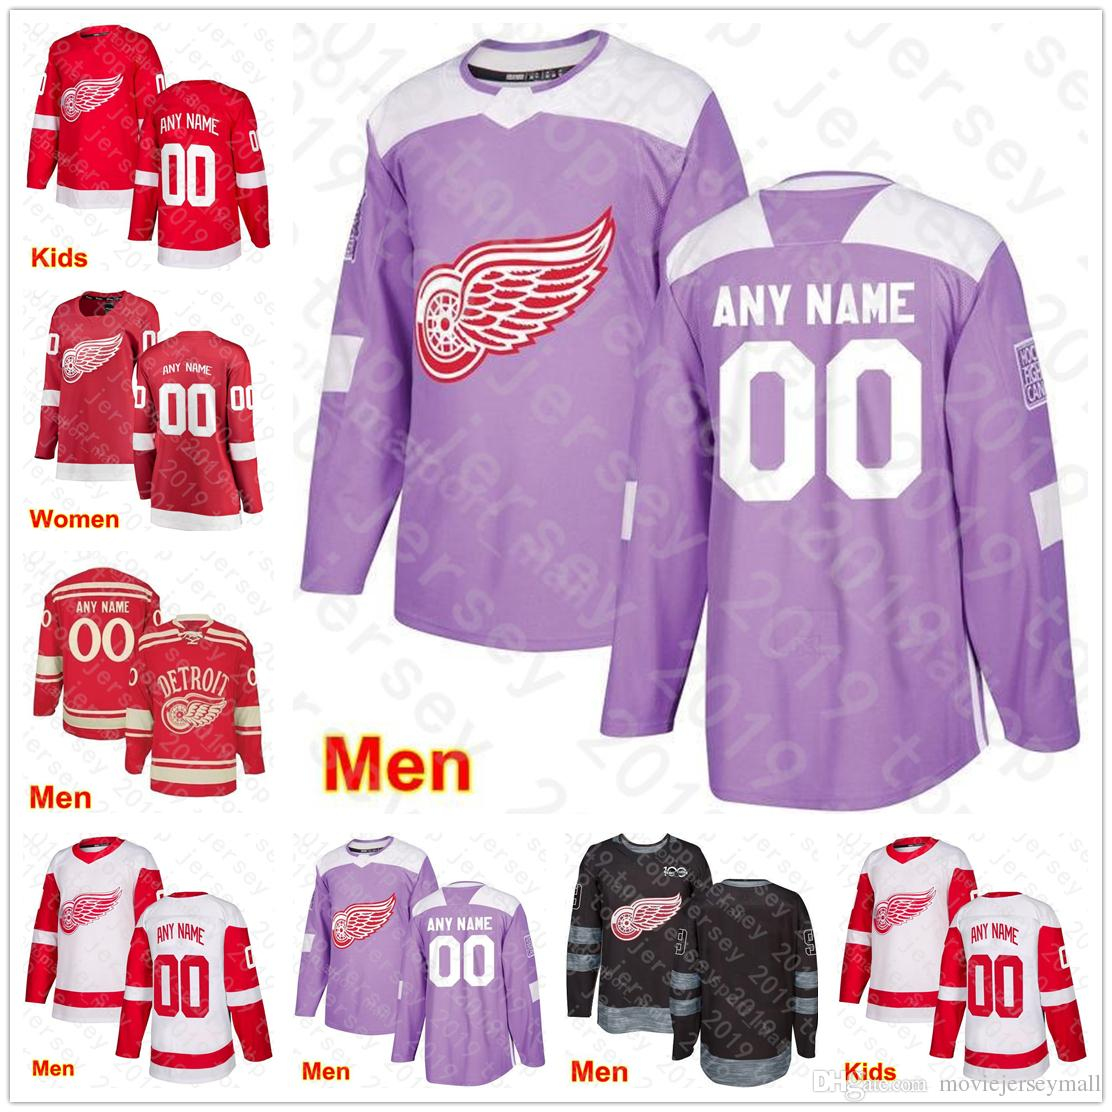 reputable site 9c9e4 016e0 2019 Men Kids Women Andreas Athanasiou Jersey Detroit Red Wings Winter  Classic Hockey Tyler Bertuzzi Anthony Mantha Frans Nielsen Red White Camo  From ...